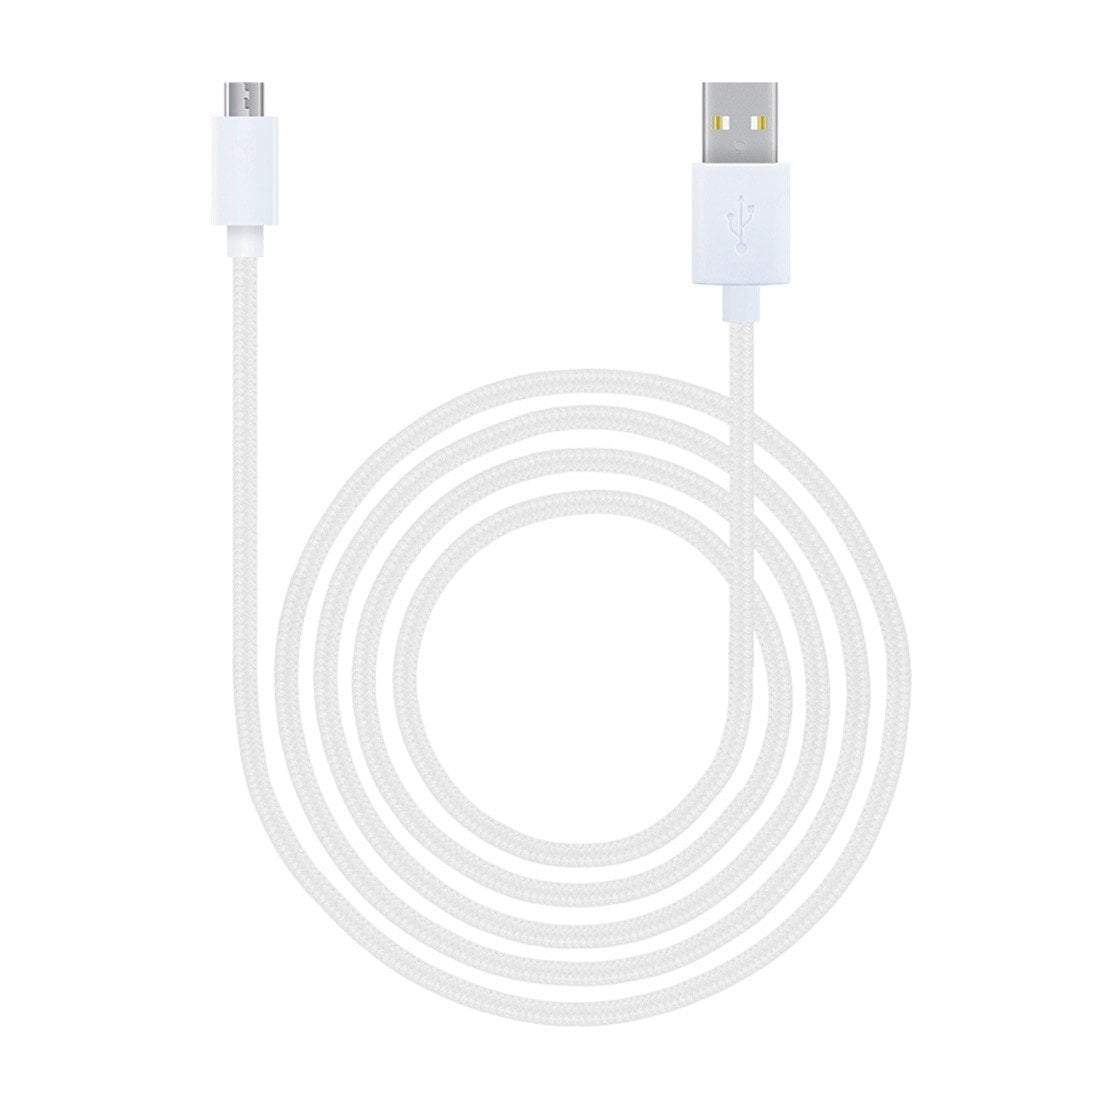 JCPal Cable LiNX Micro USB to USB Braided Cable White